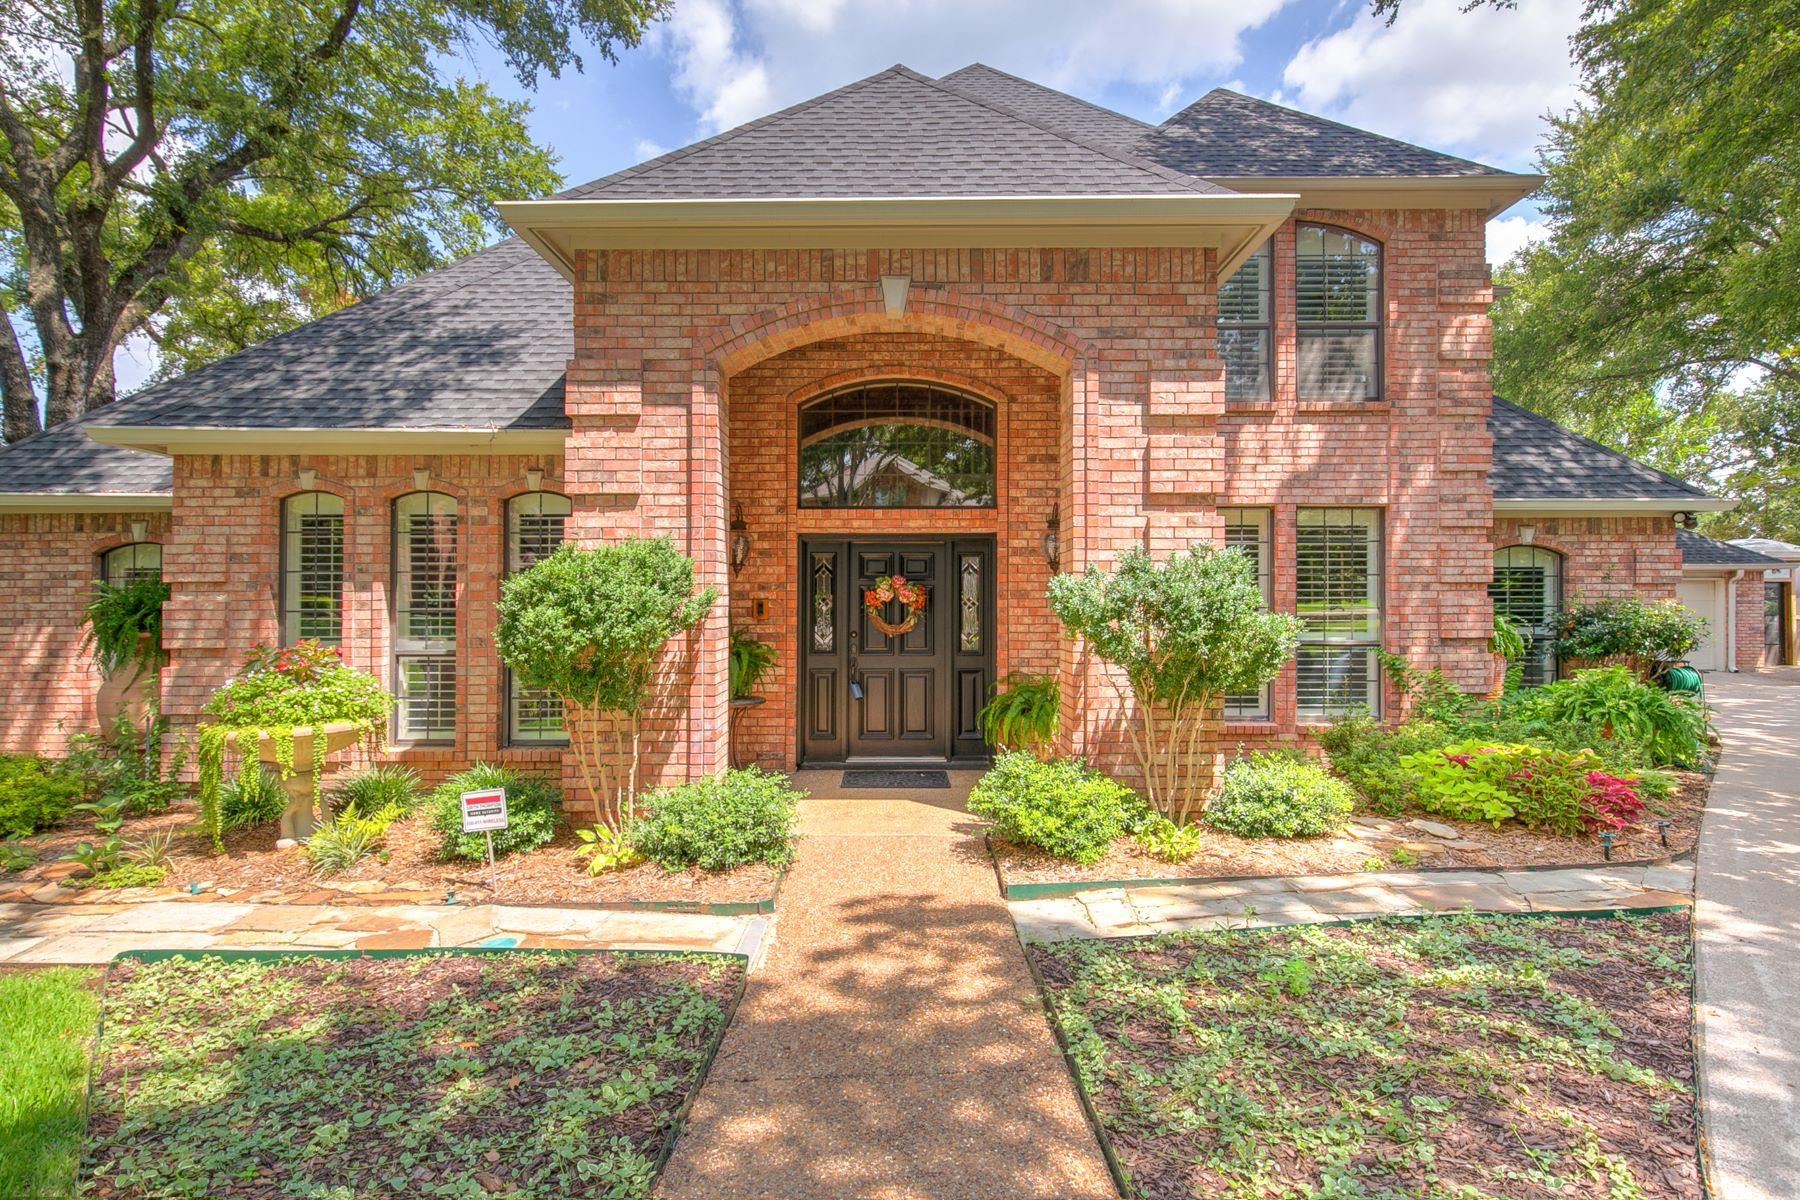 Single Family Homes for Sale at Beautiful custom home set in lush mature landscaping 3403 Forestway Court Arlington, Texas 76001 United States